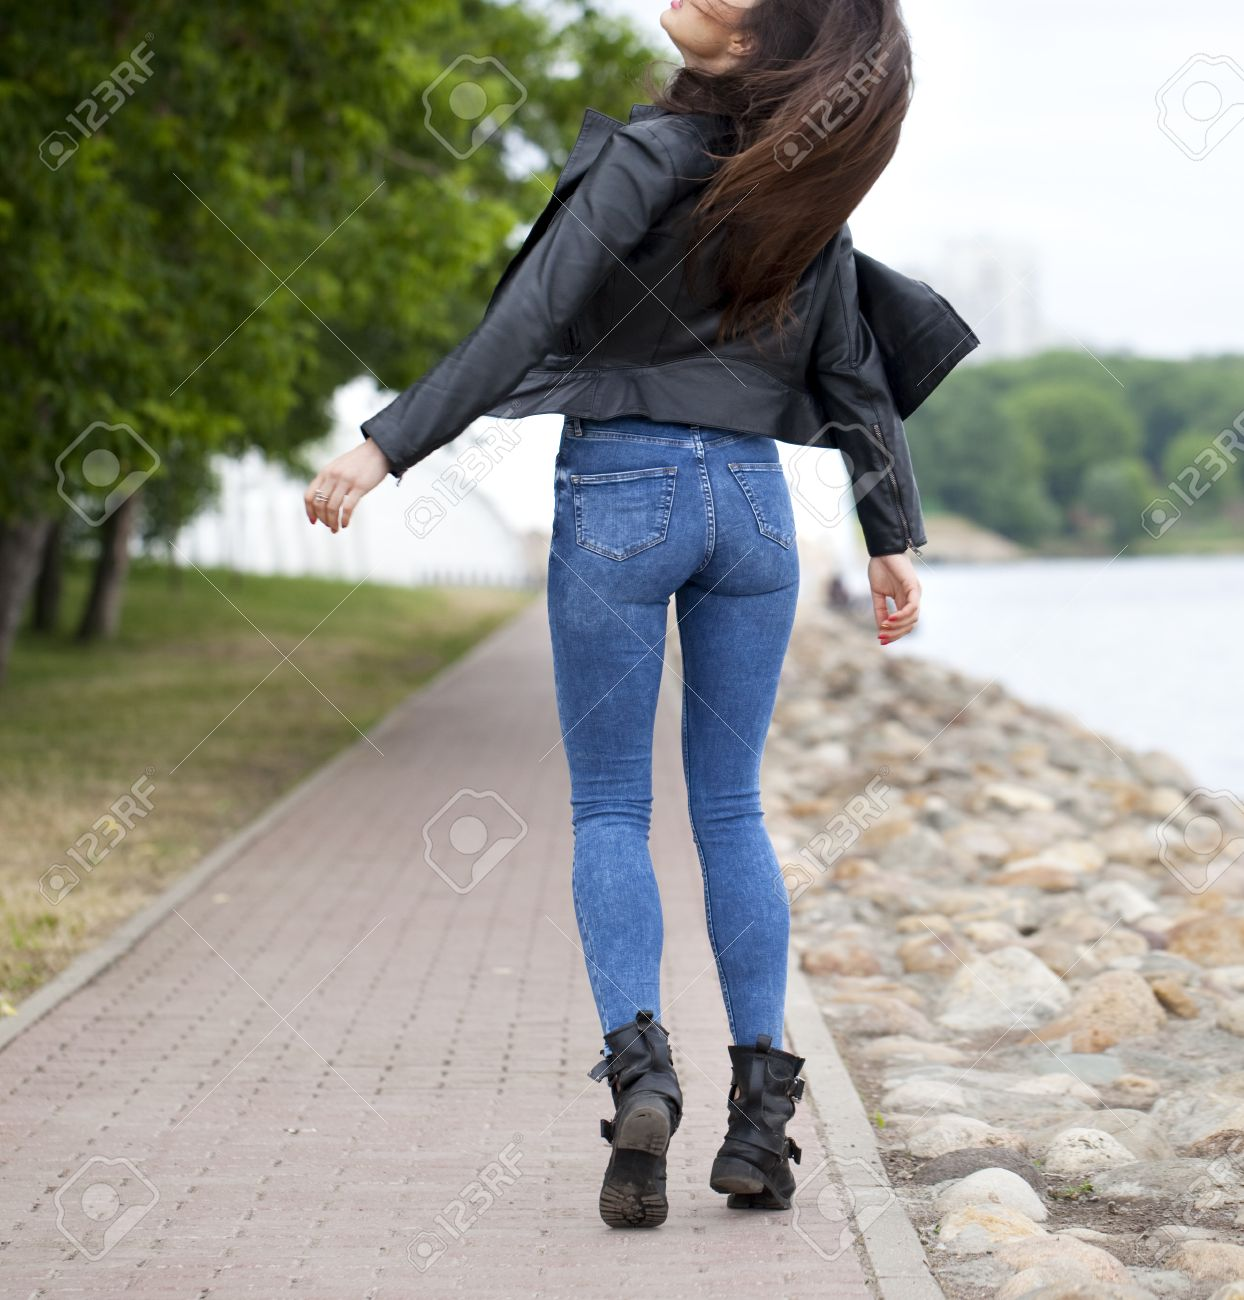 jeans teen ass Beautiful female ass in blue jeans back away Stock Photo - 29145581